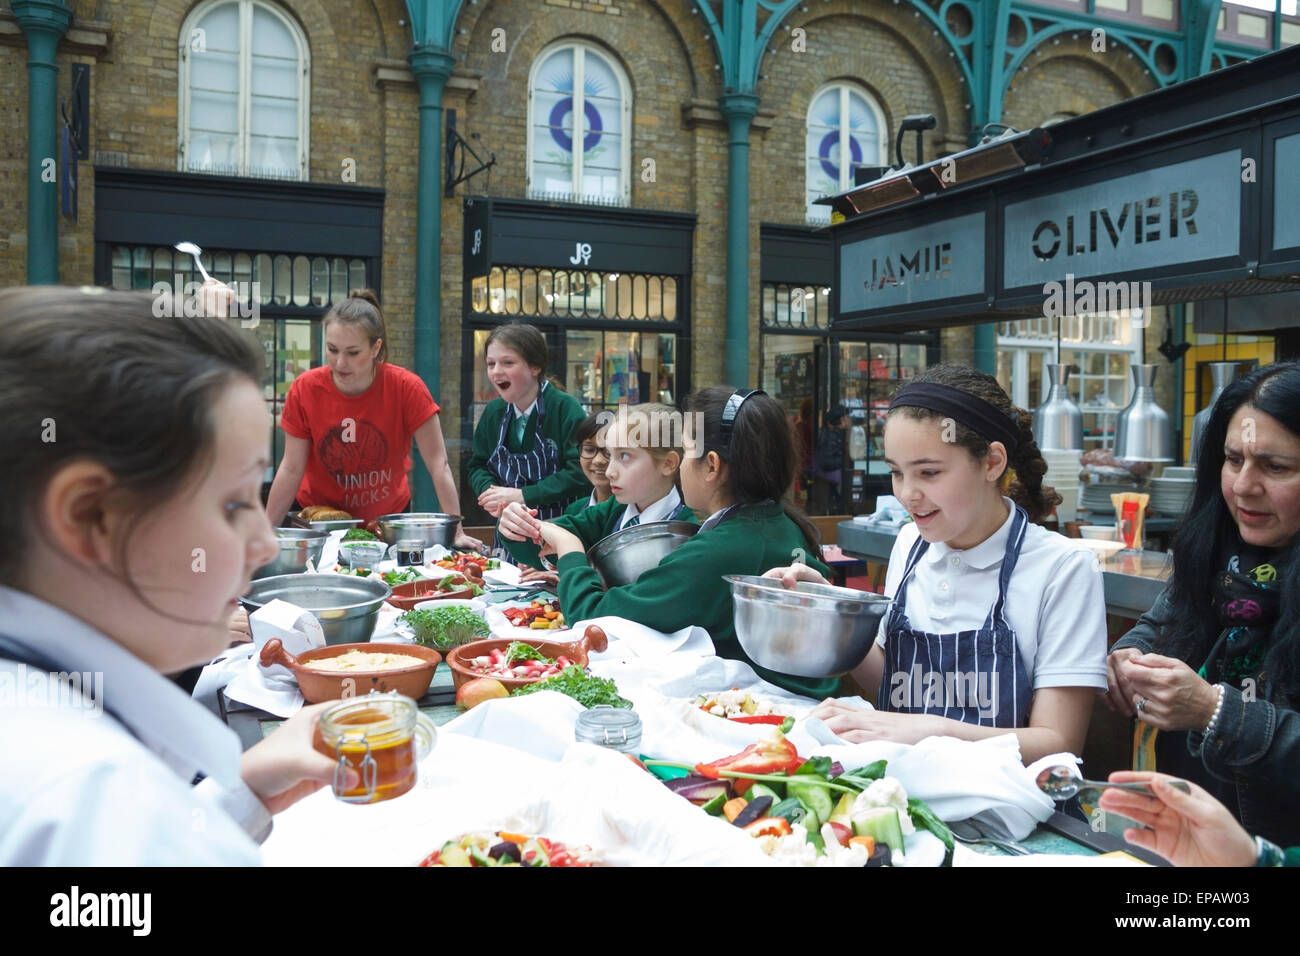 London, UK. 15th May, 2015. Jamie Oliver's Union Jacks eatery, at Covent Garden, invited 30 pupils from St Josephs - Stock Image